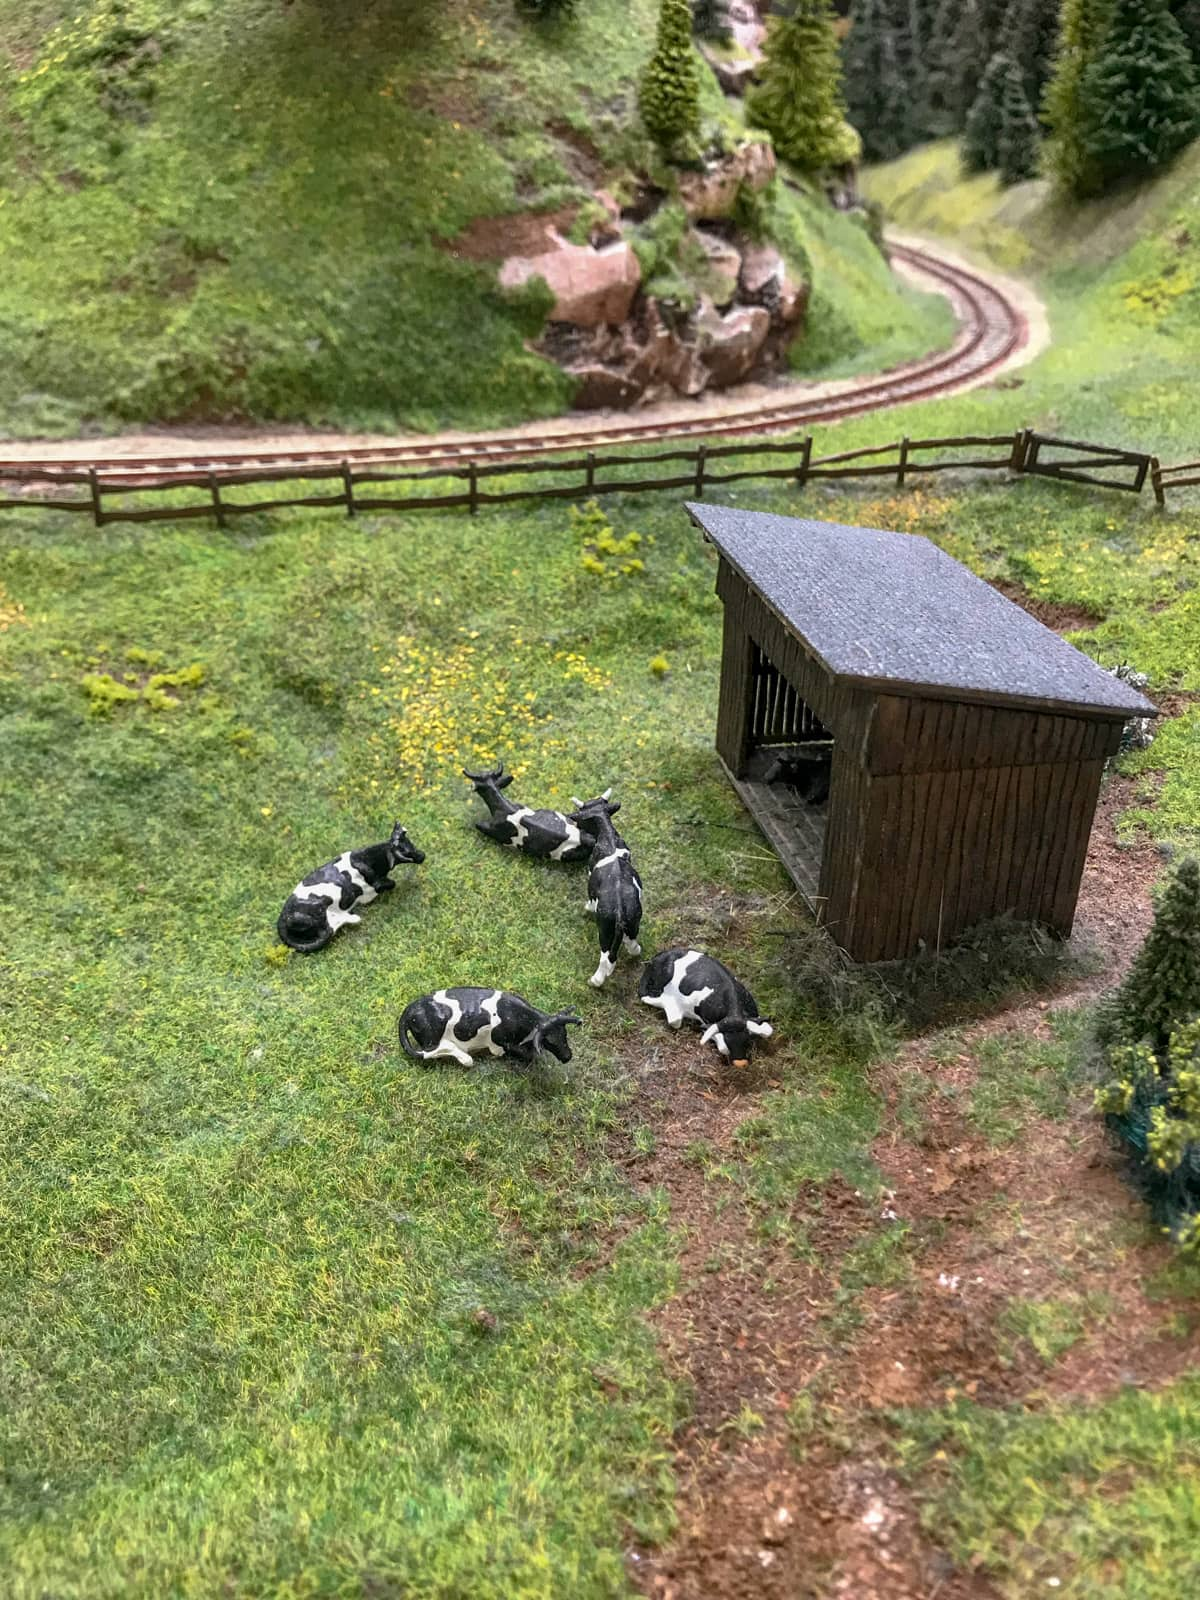 A close-up view of some black and white model cows on grass, part of a miniature model railway.